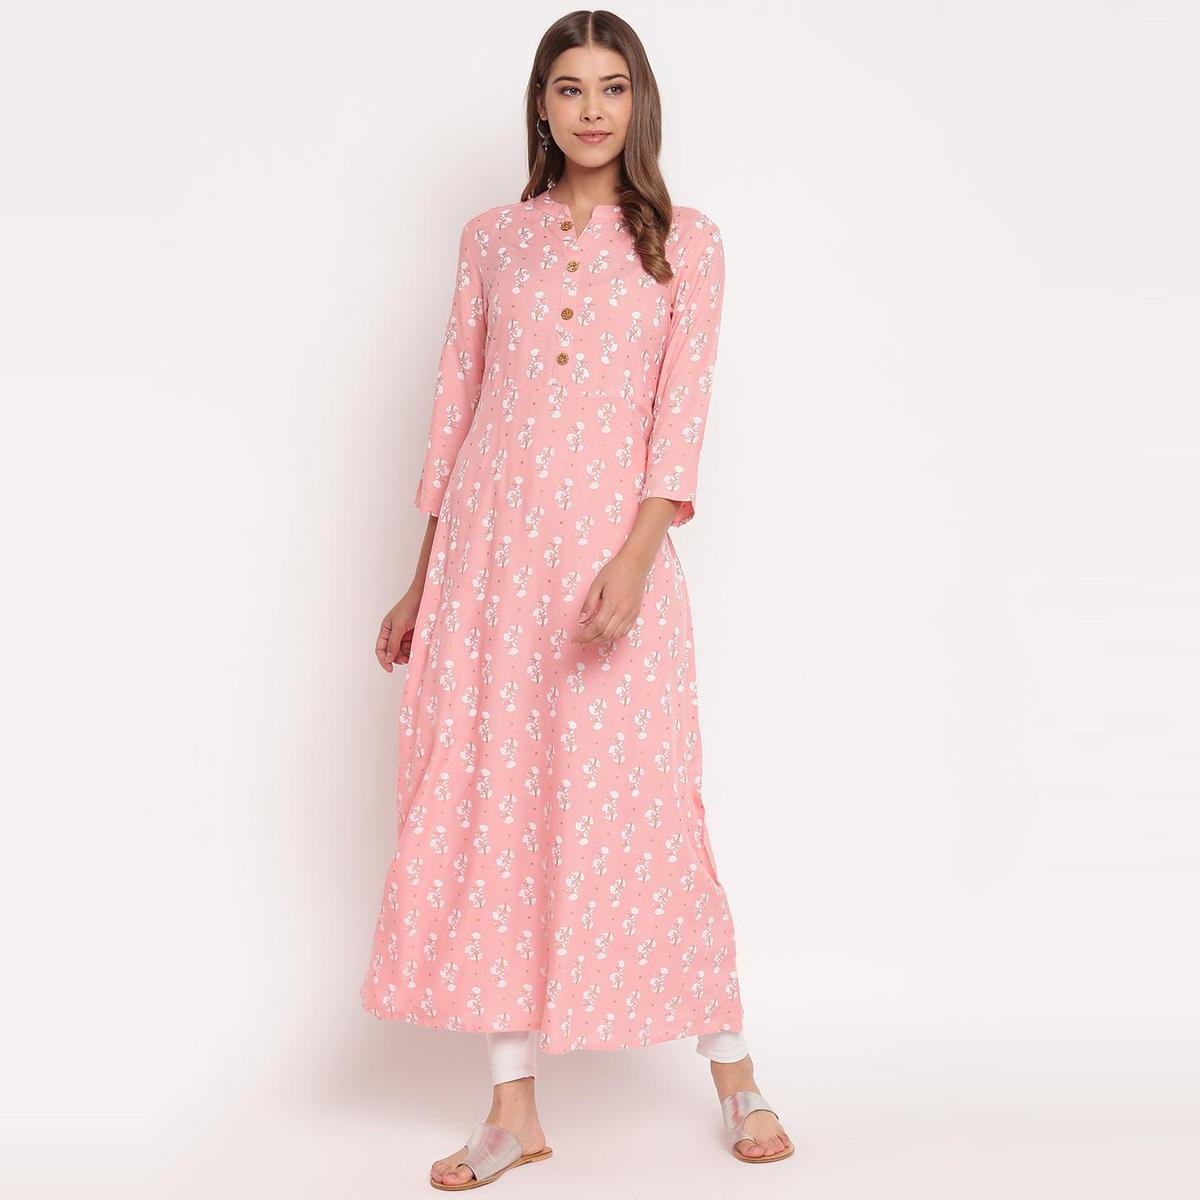 Stylum Pleasant Pink Colored Party Wear Floral Print Ankle Length Rayon Kurti